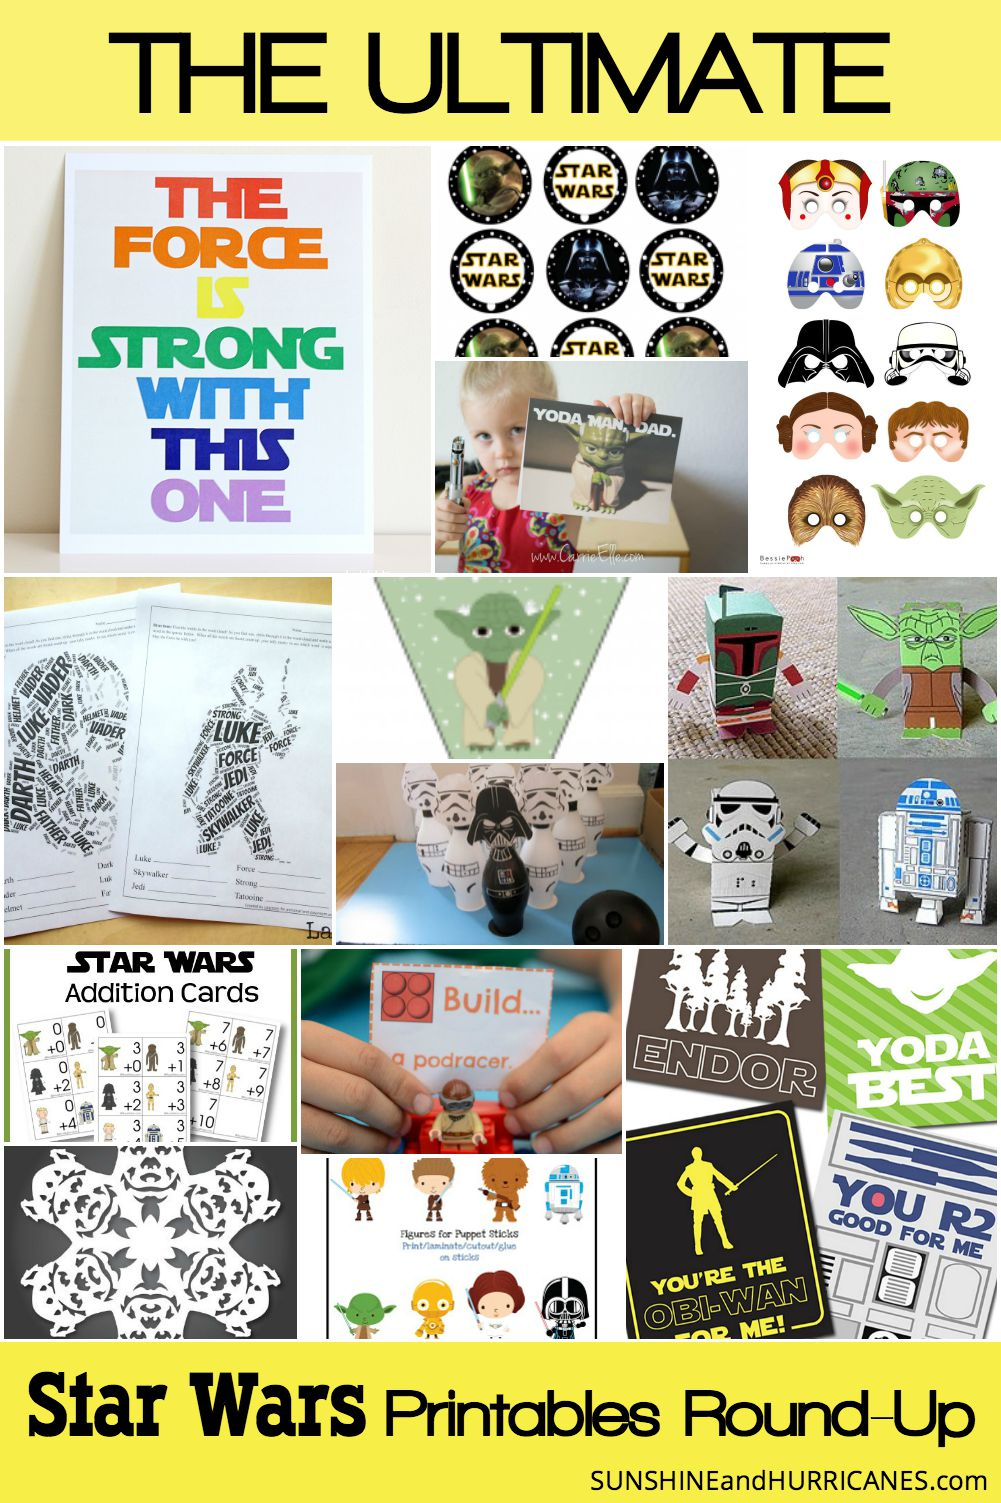 Star Wars Printables An Out Of This World Round-Up - Star Wars Printable Cards Free